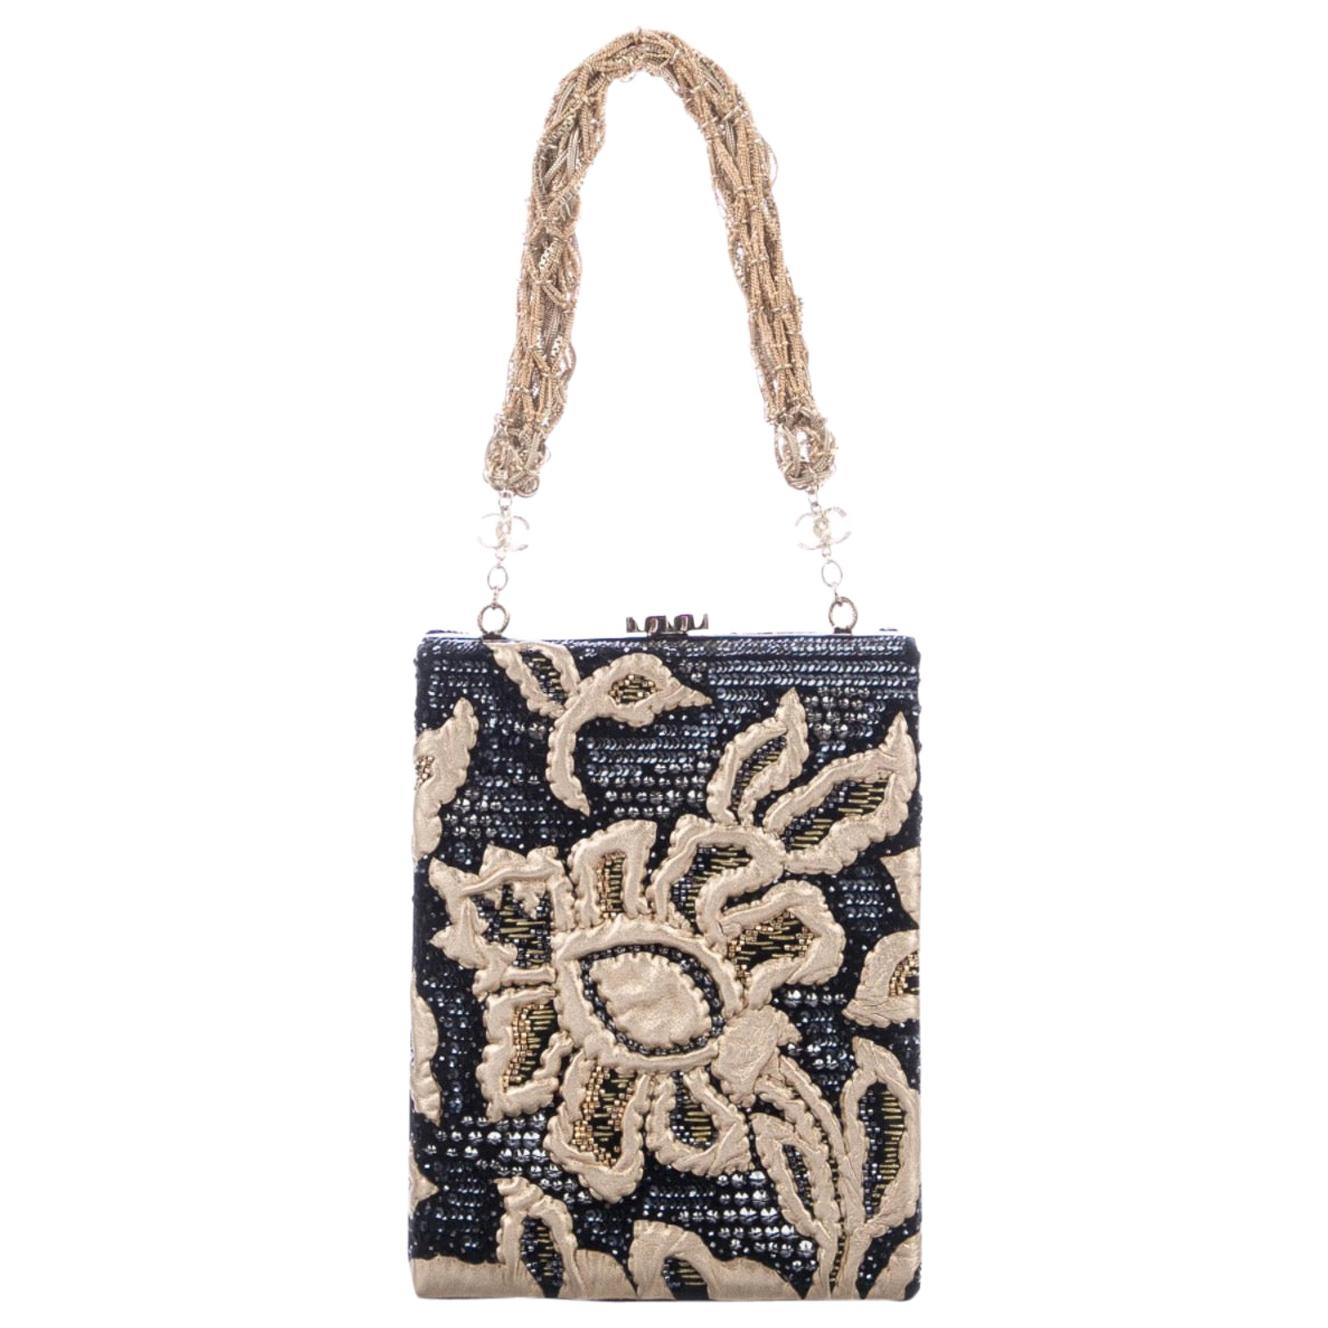 Chanel Navy Blue Gold Satin Embroidery Leather Top Handle Evening Shoulder Bag